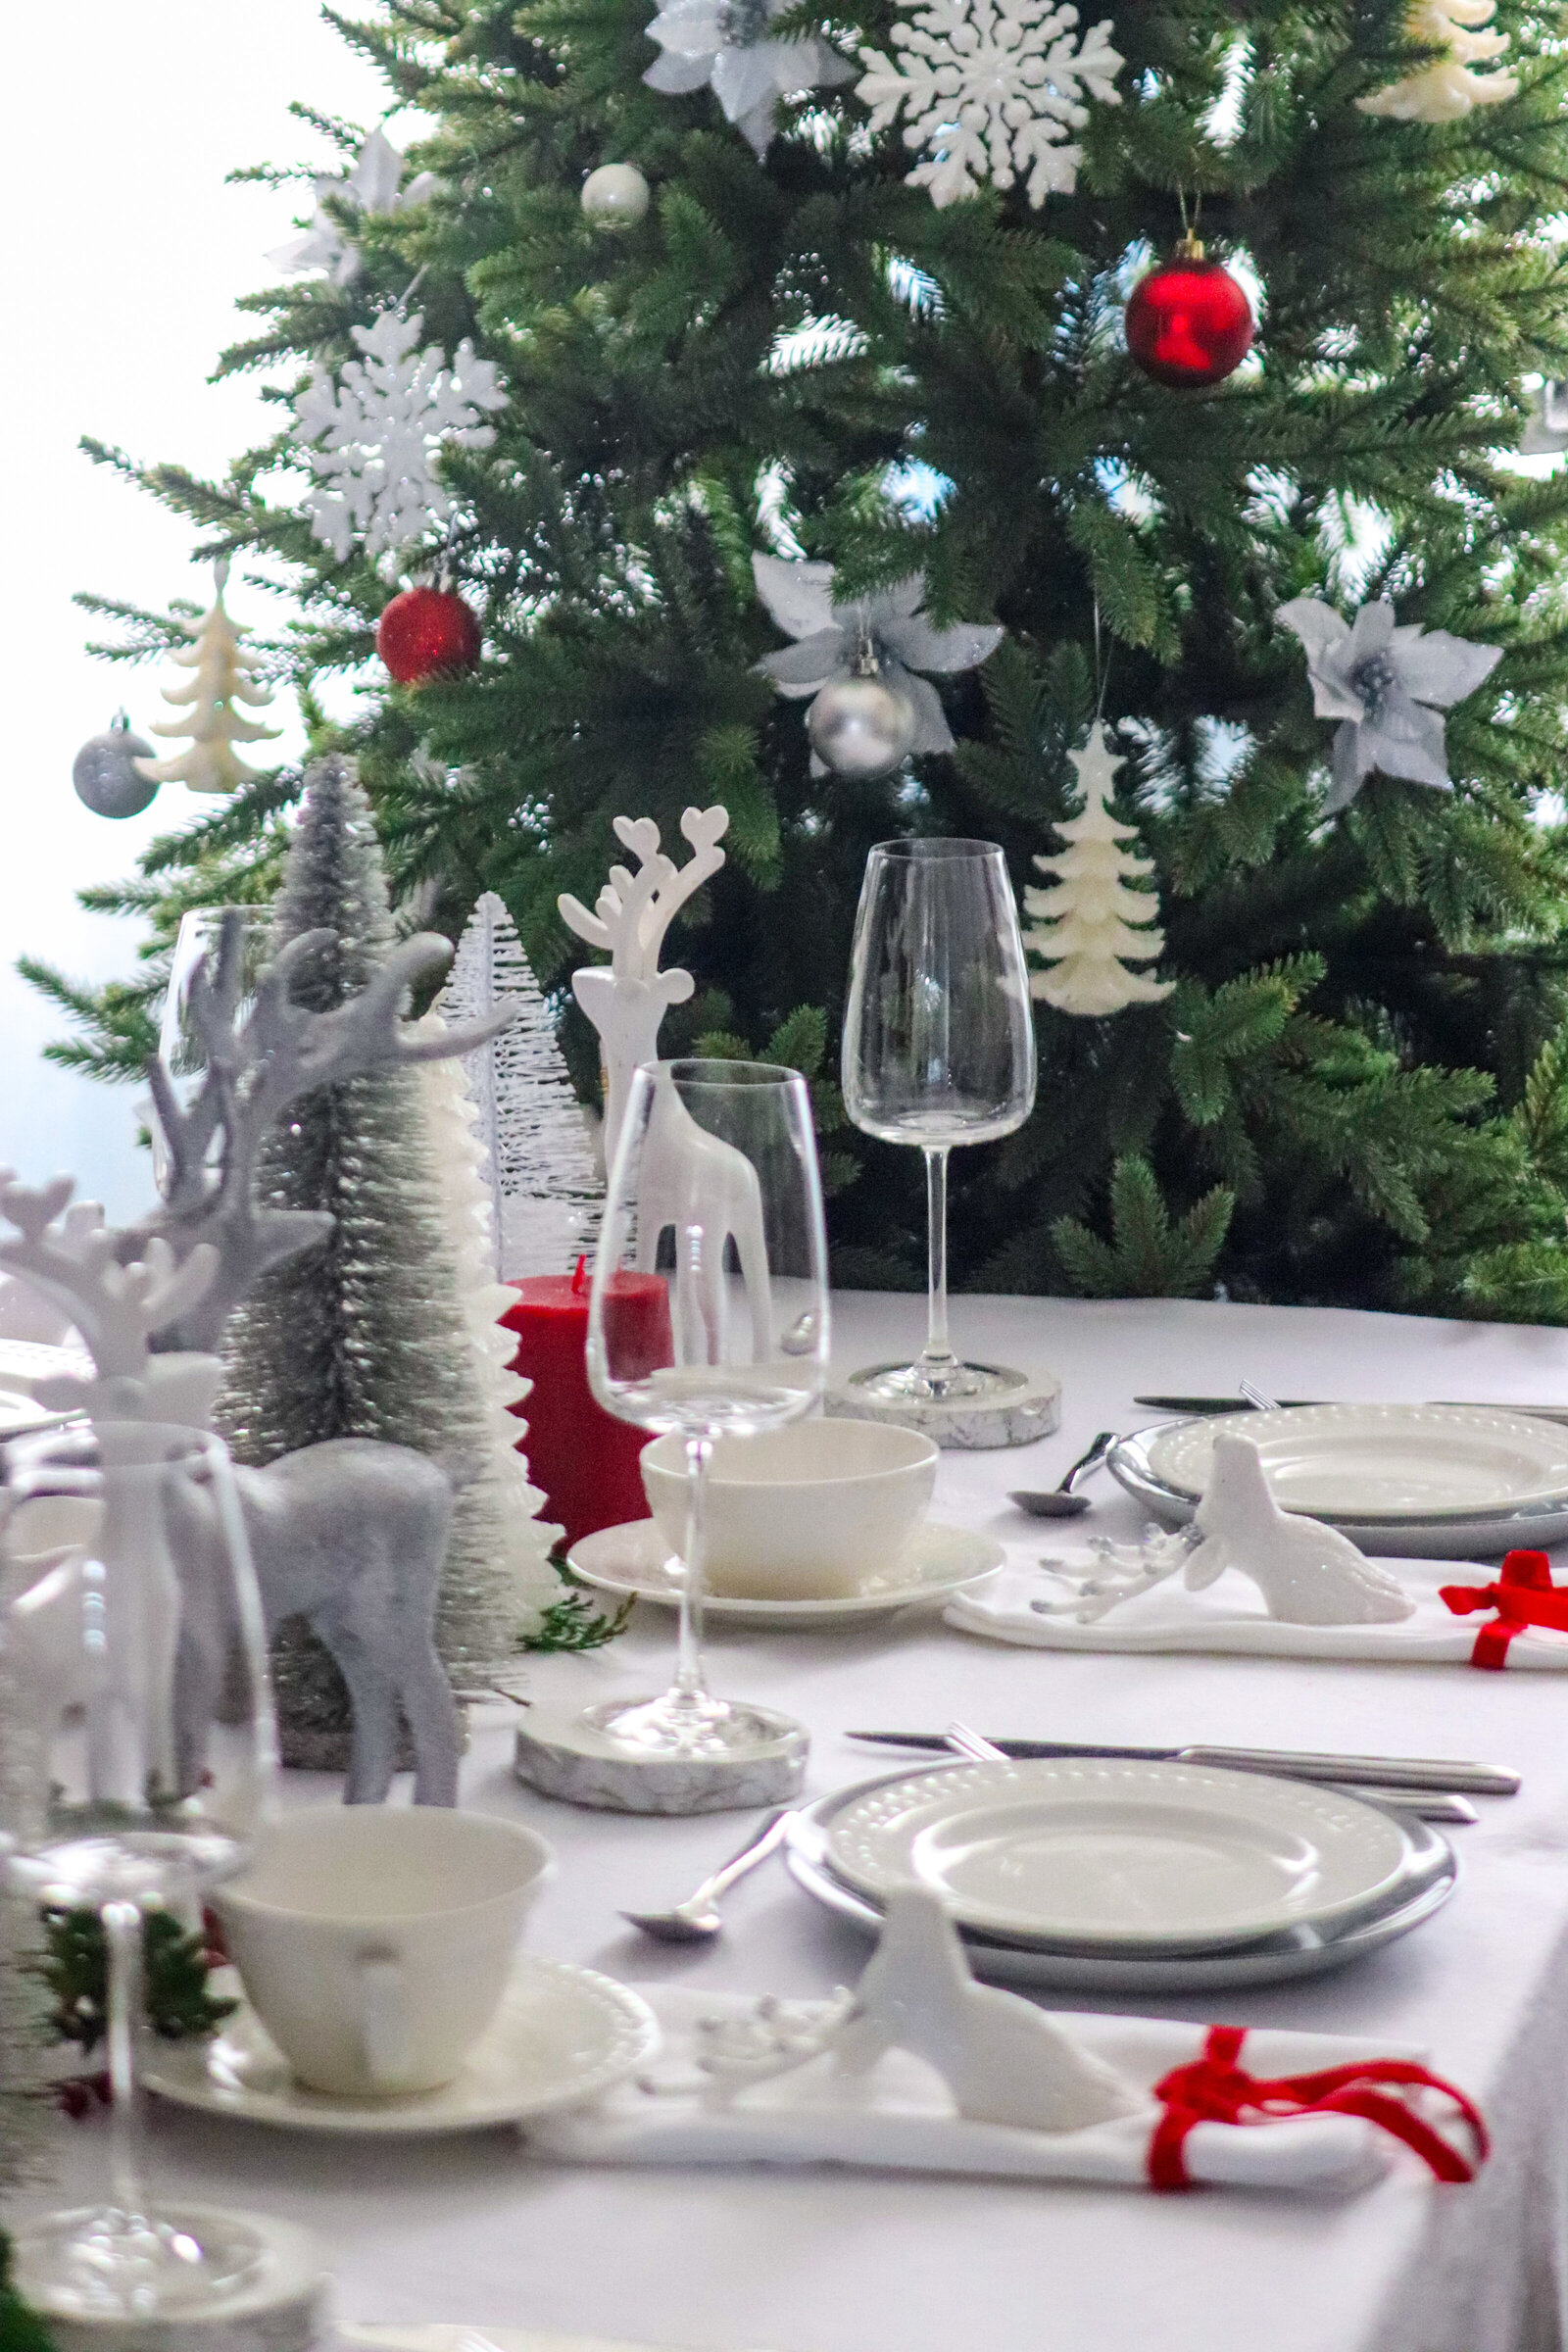 decor arrangement table setting winter theme white red silver event planner wedding Pearl Ivy events